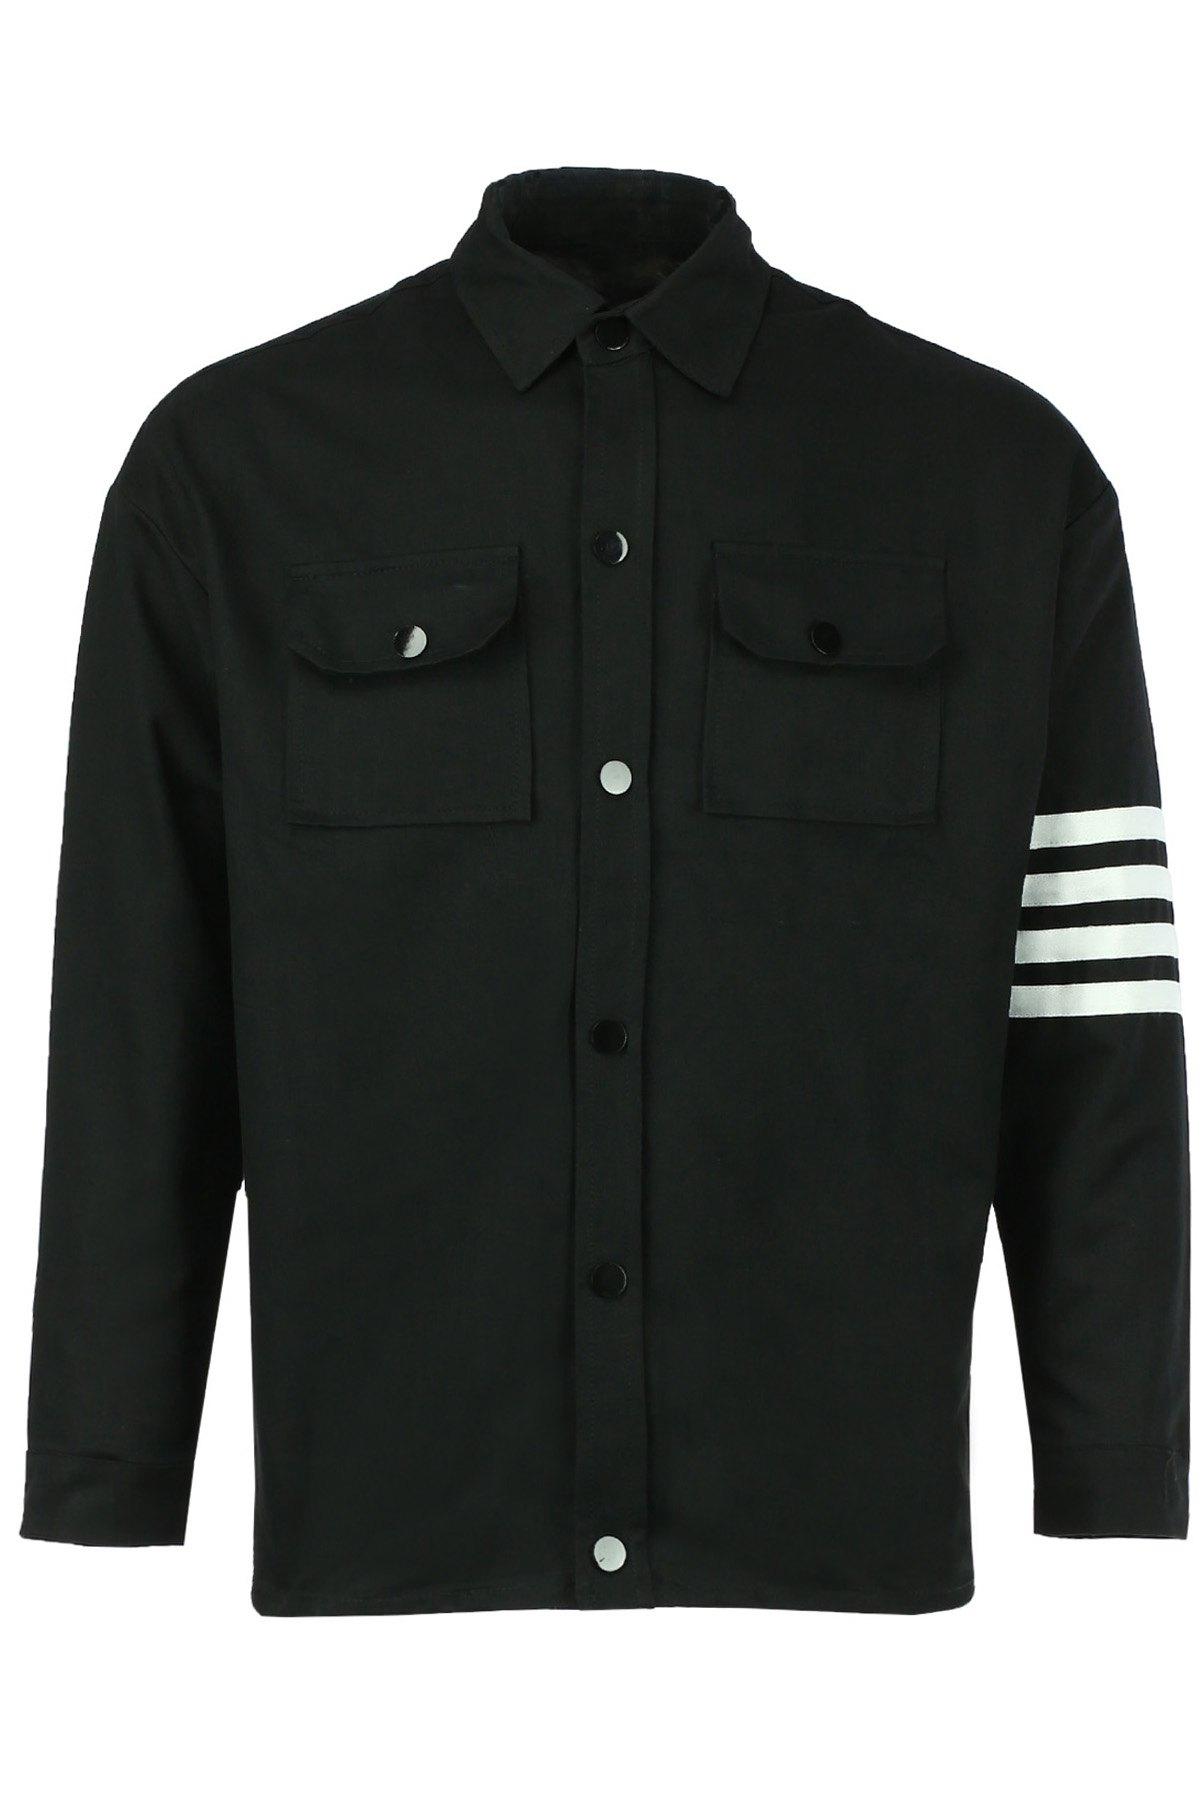 Double Pocket Stripes Spliced Turn-down Collar Long Sleeves Men's Jacket - BLACK L